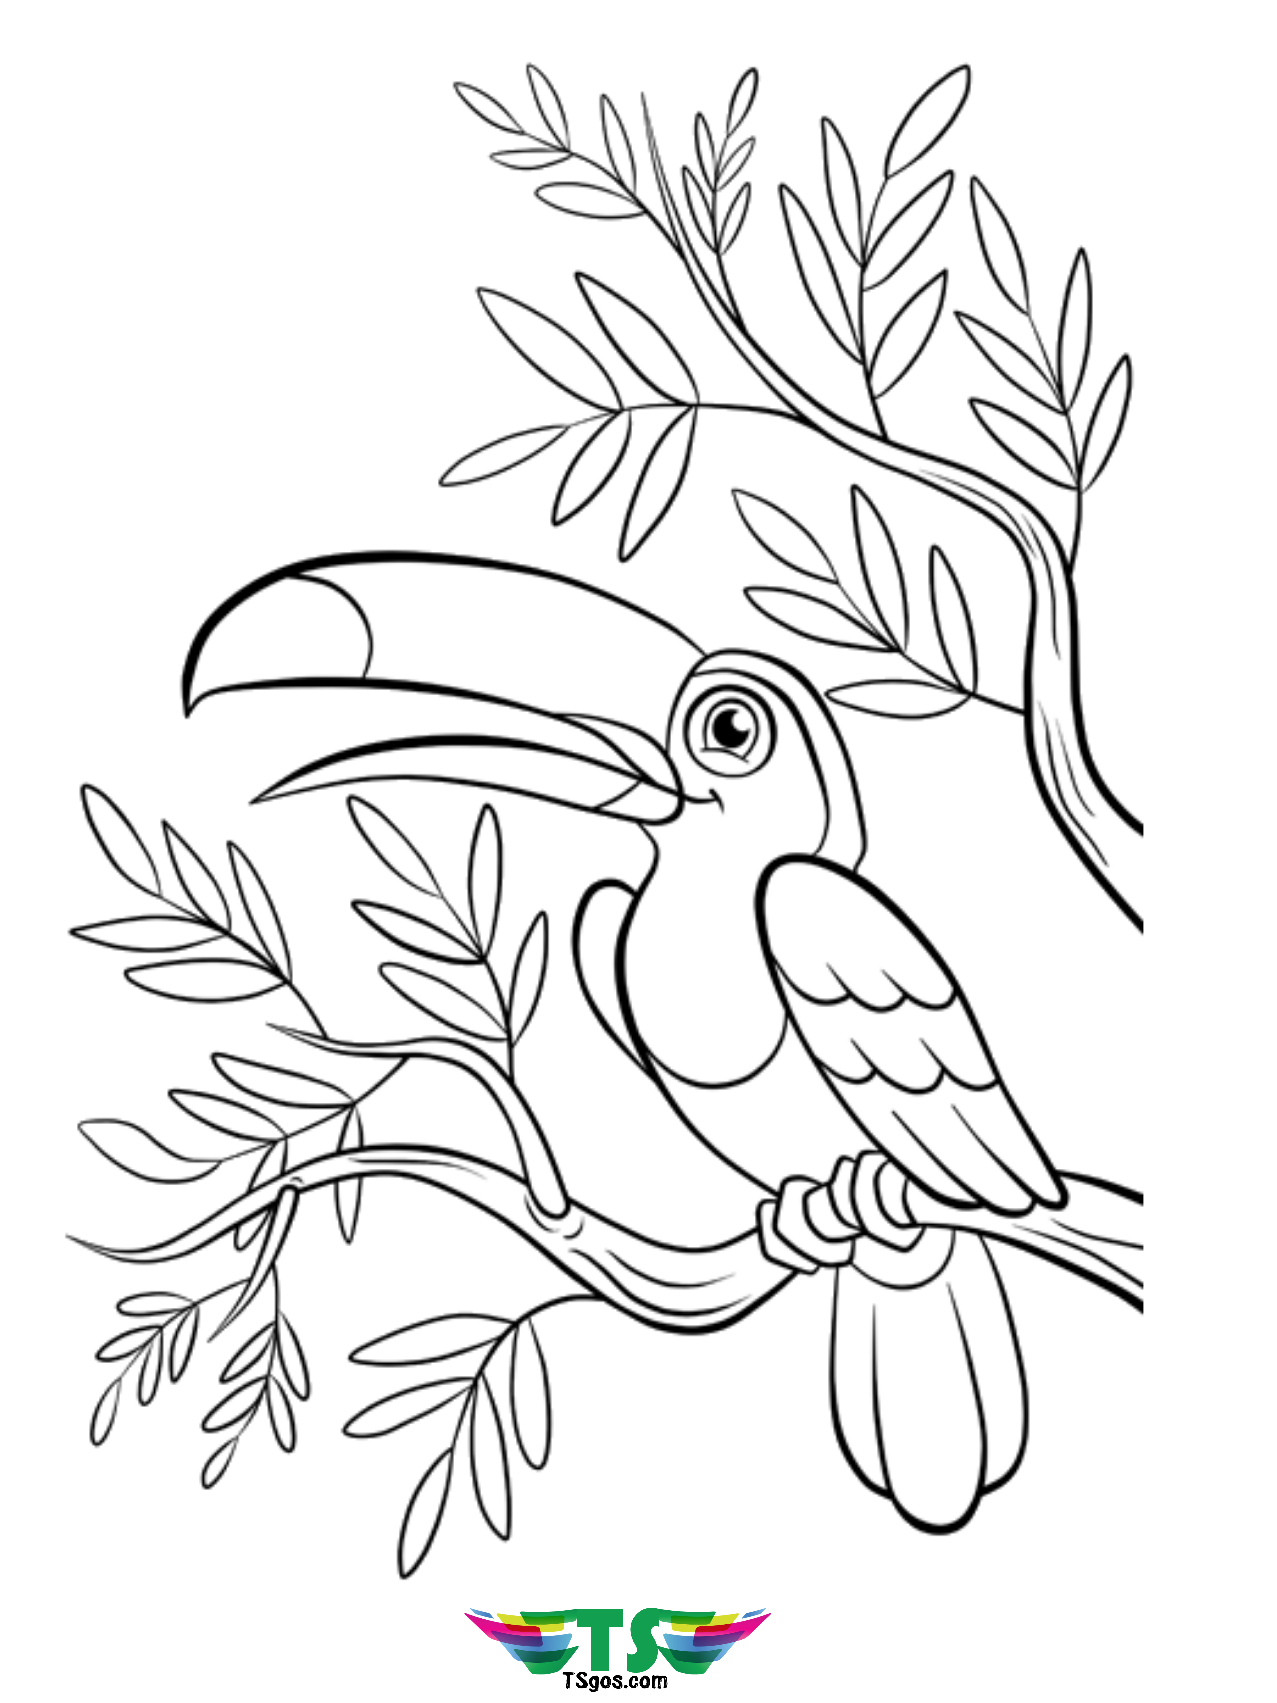 bird colouring pages for kids beautiful bird coloring page free download tsgoscom pages kids colouring bird for